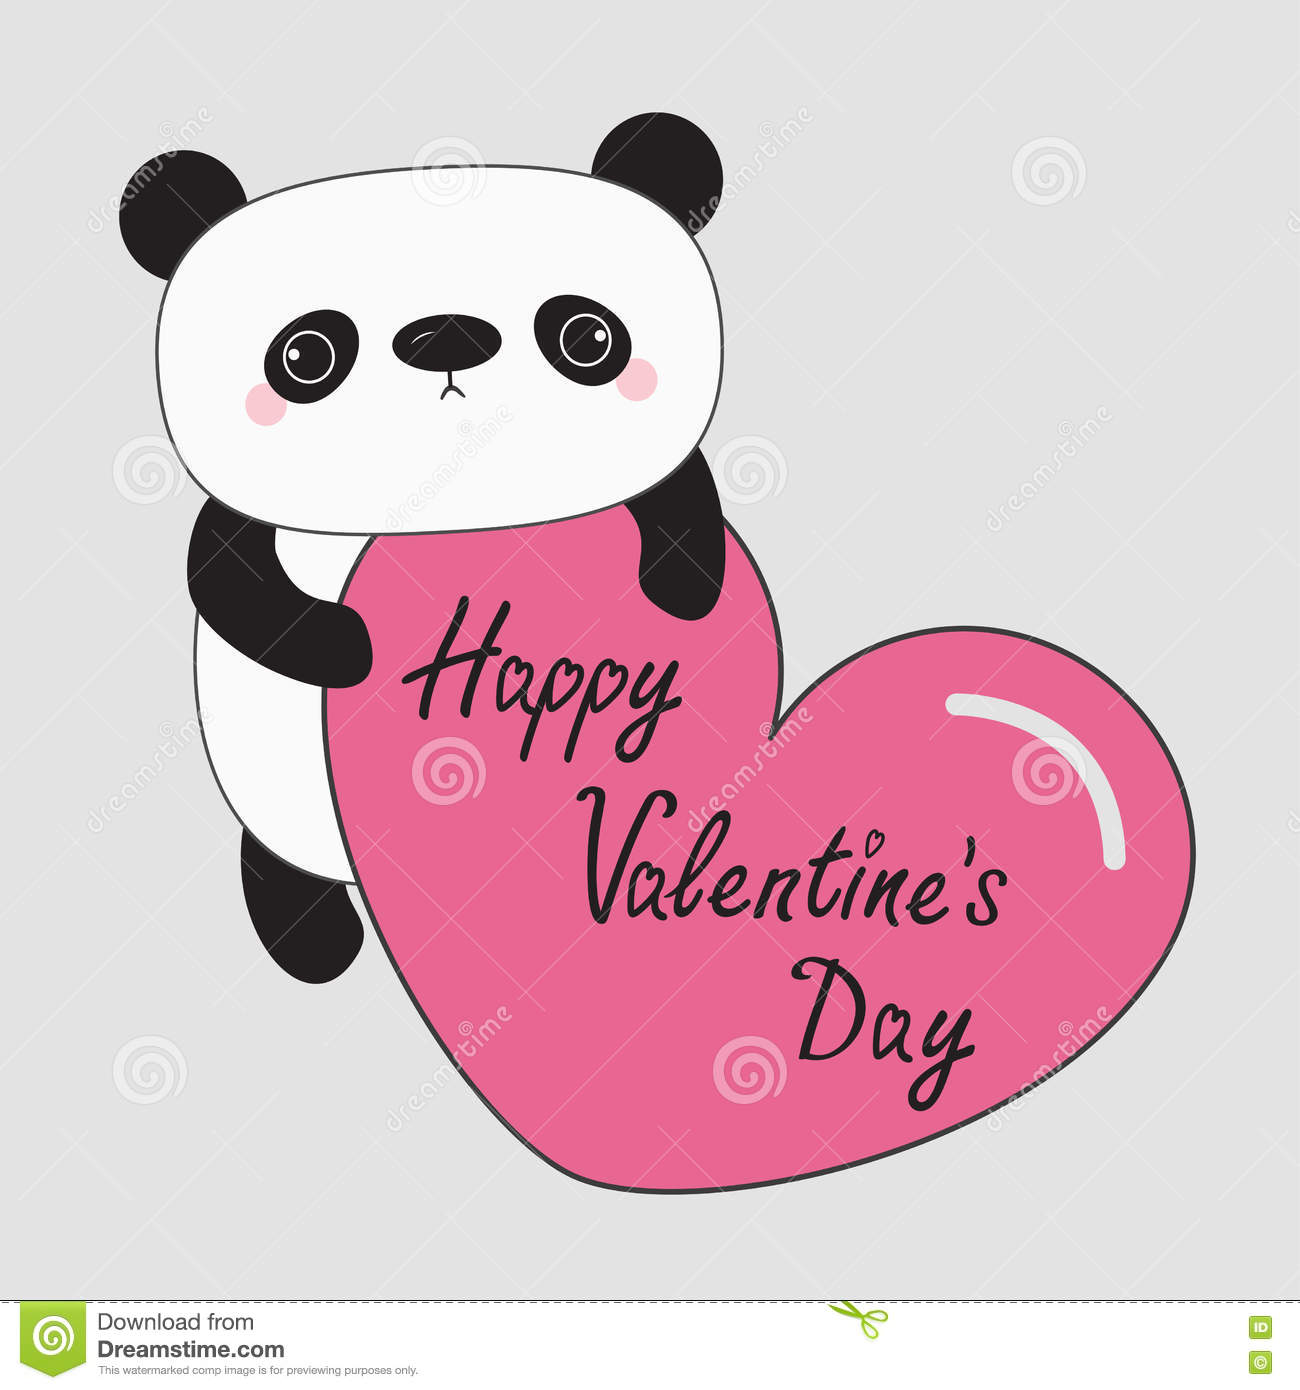 Heart Clipart For Valentines Day Cute Animals 20 Free